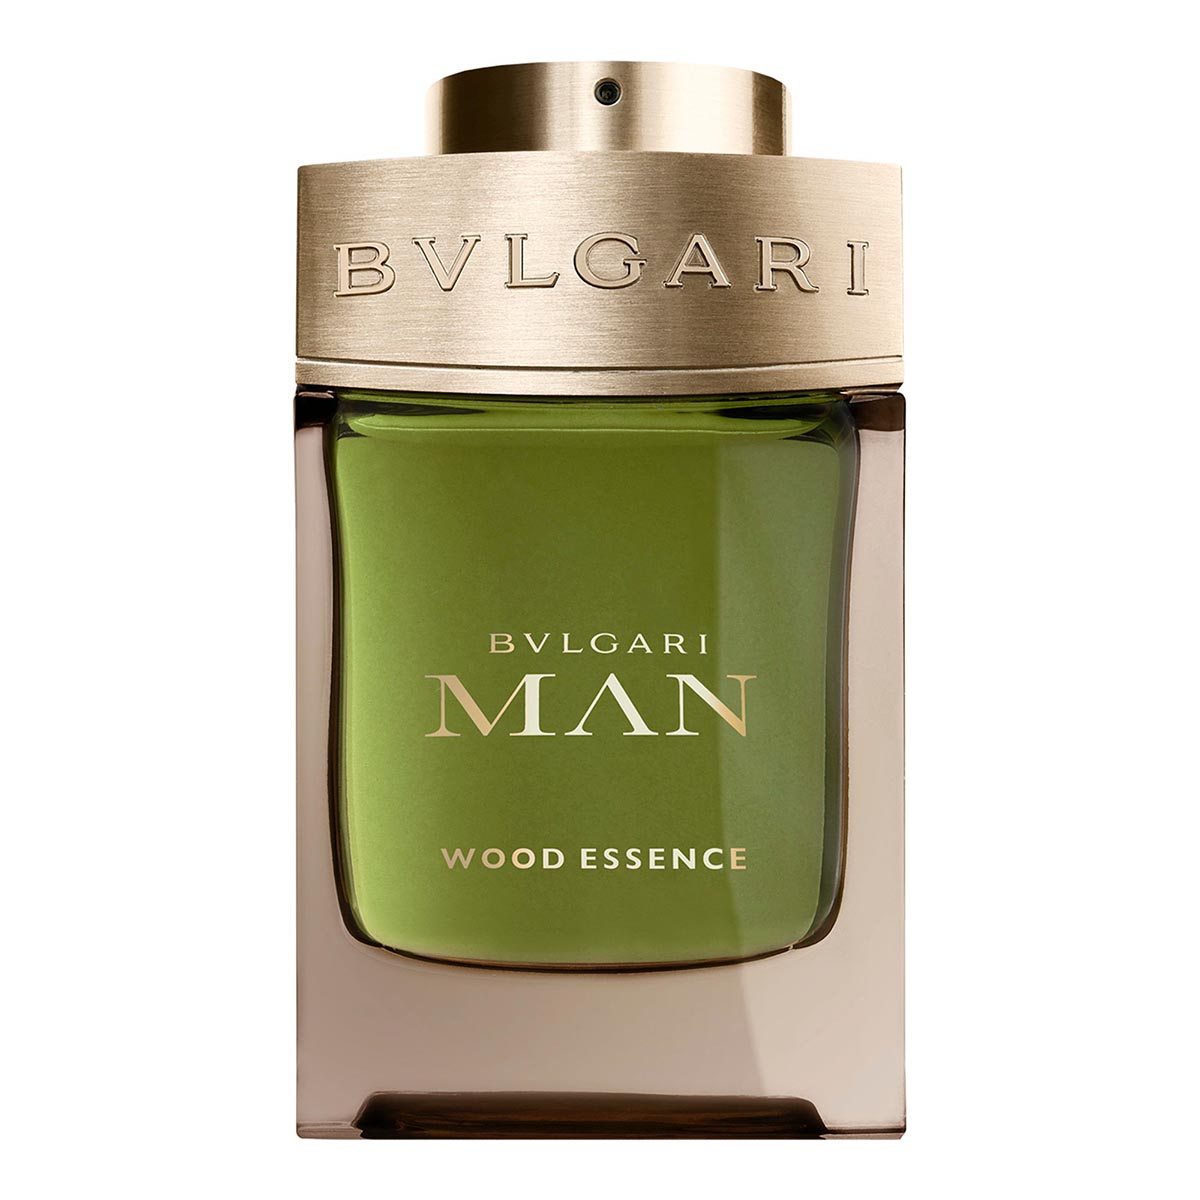 Bvlgari man wood essence eau de parfum 100ml vaporizador